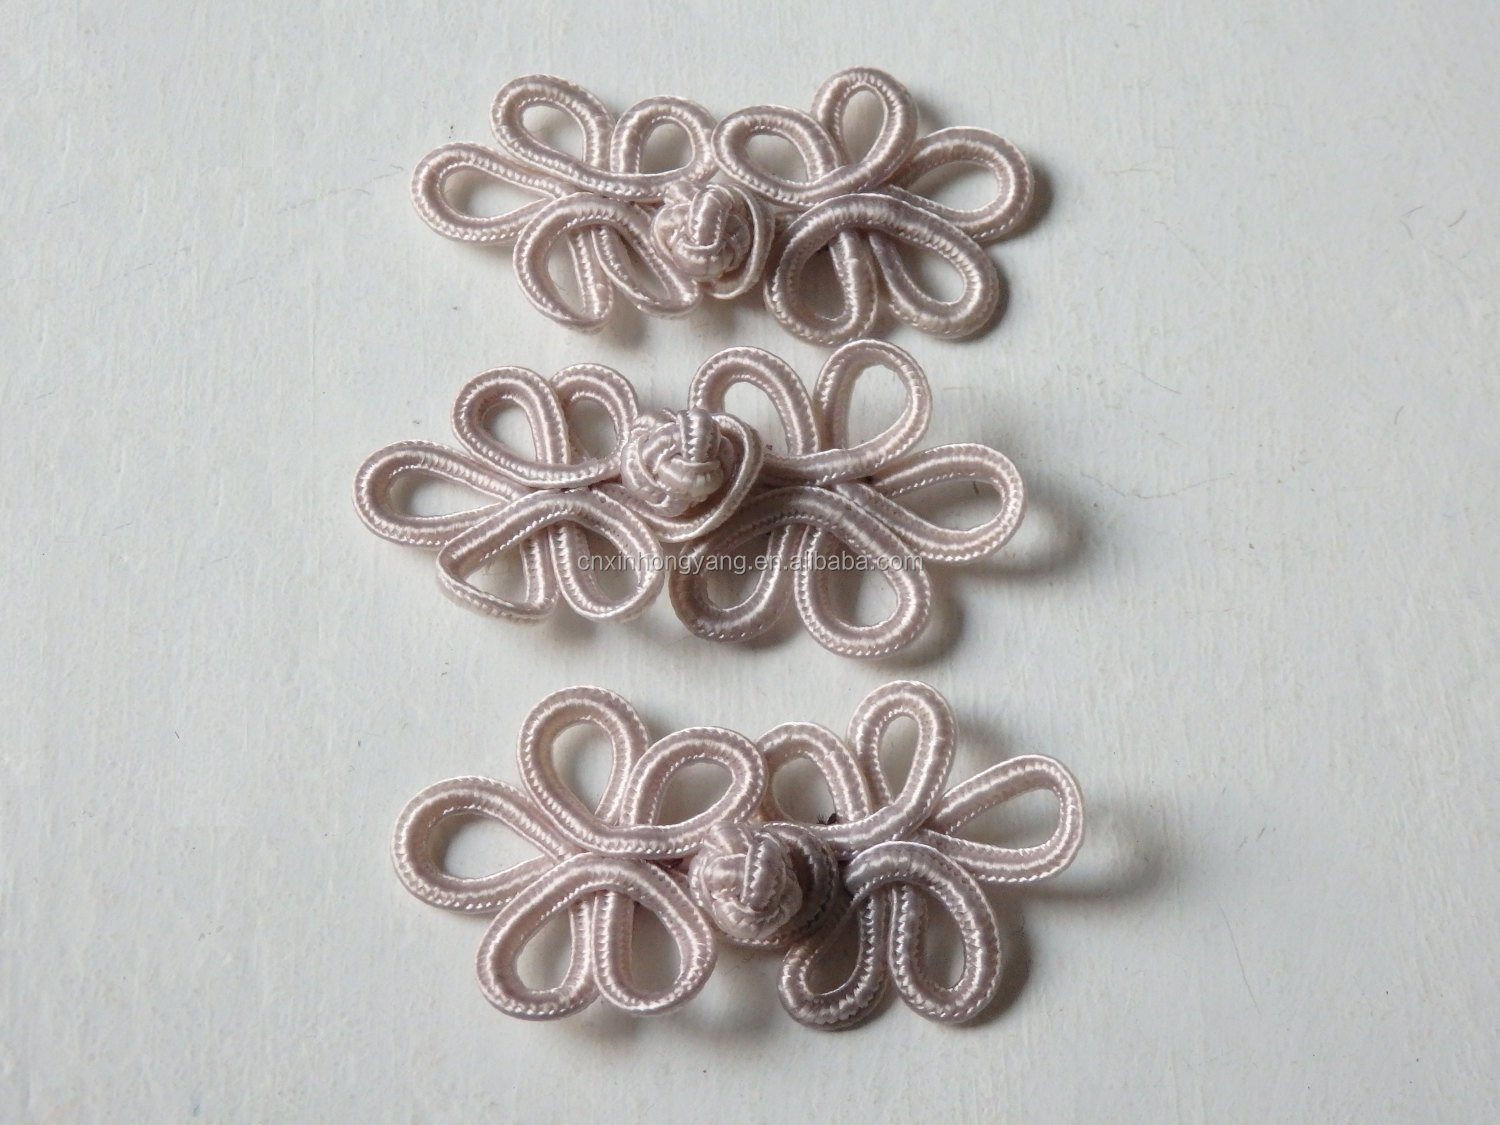 Frog Fasteners Button Knots /& Cufflings